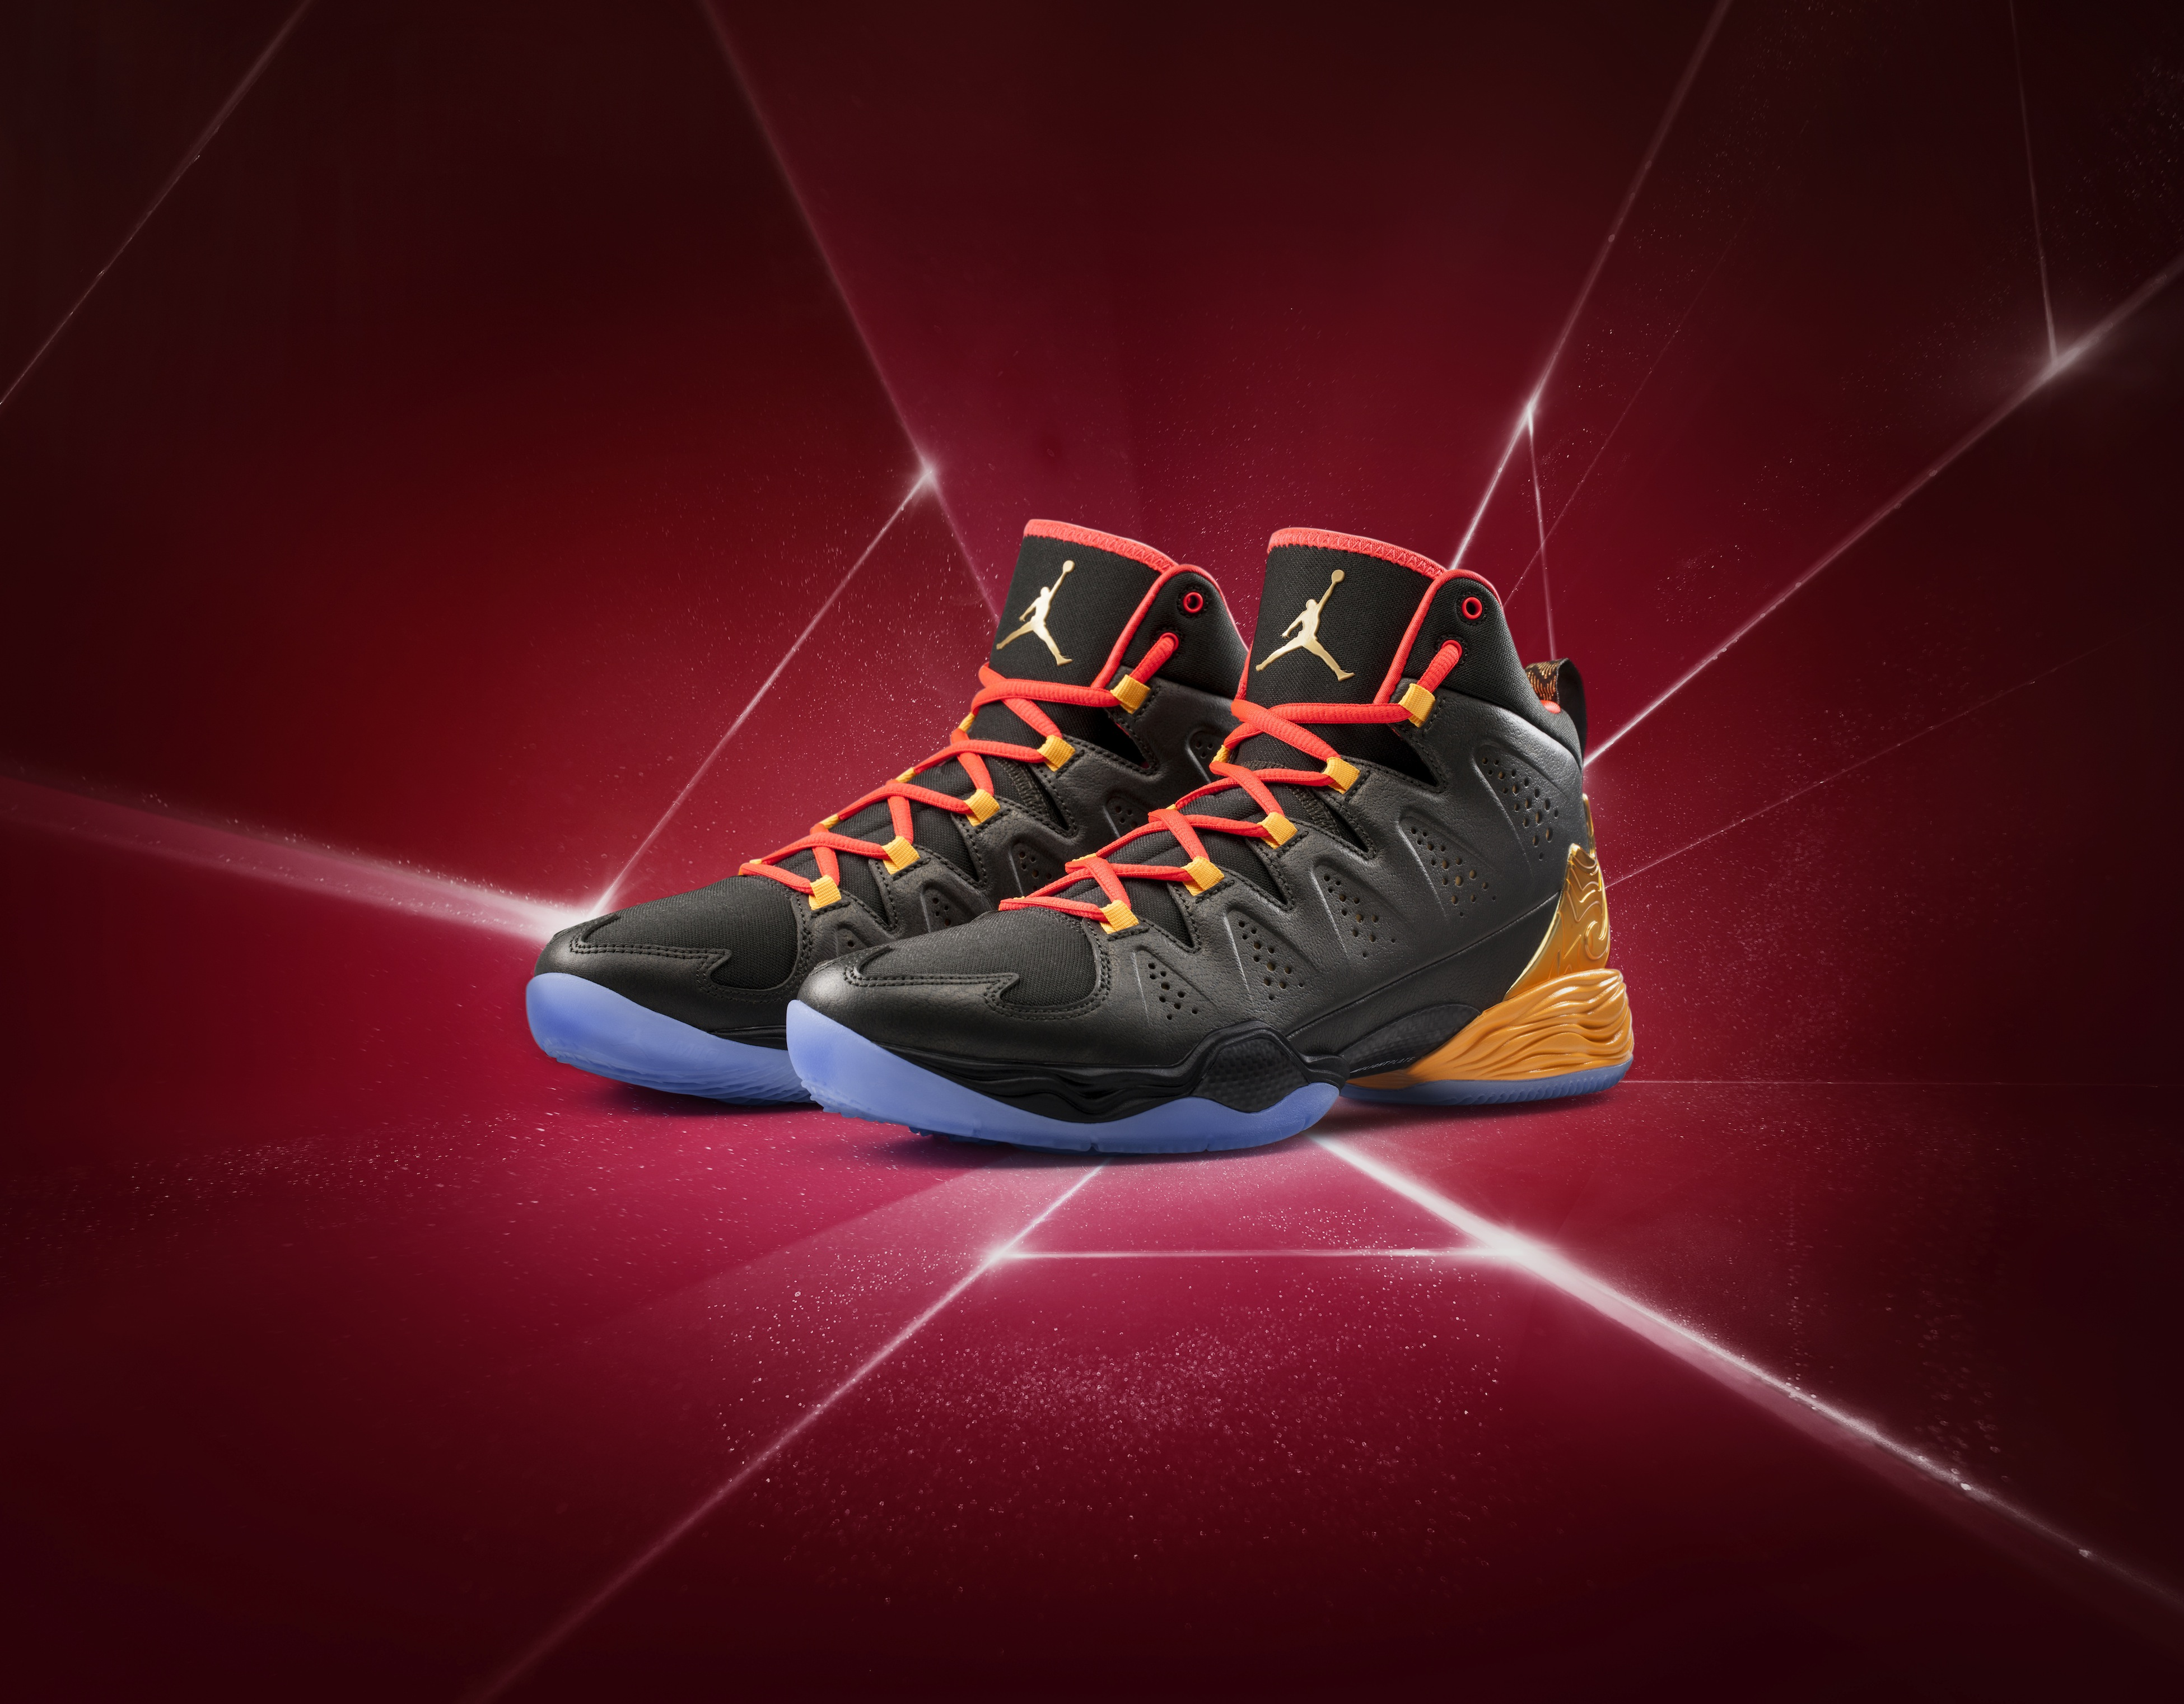 sports shoes d0e22 d5801 Jordan Brand All-Star Lineup The Crescent City Collection 6